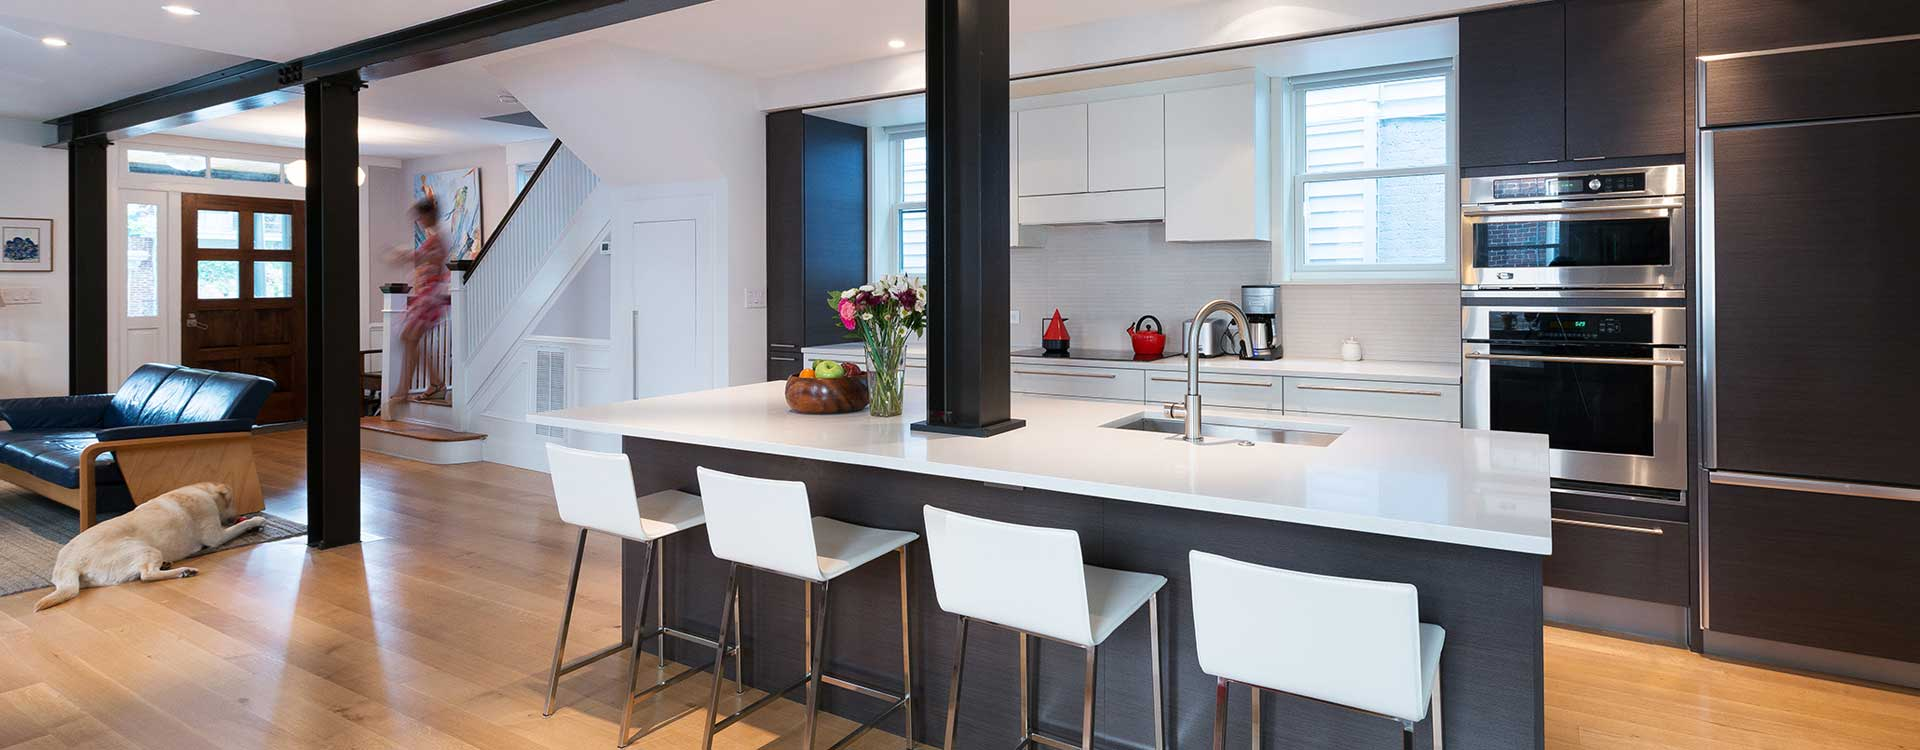 A Kitchen Renovation With Dark Cabinets And White Stone Counter Tops Built By Covington Contracting Luxury Custom Homebuilder In Hampton Roads Virginia